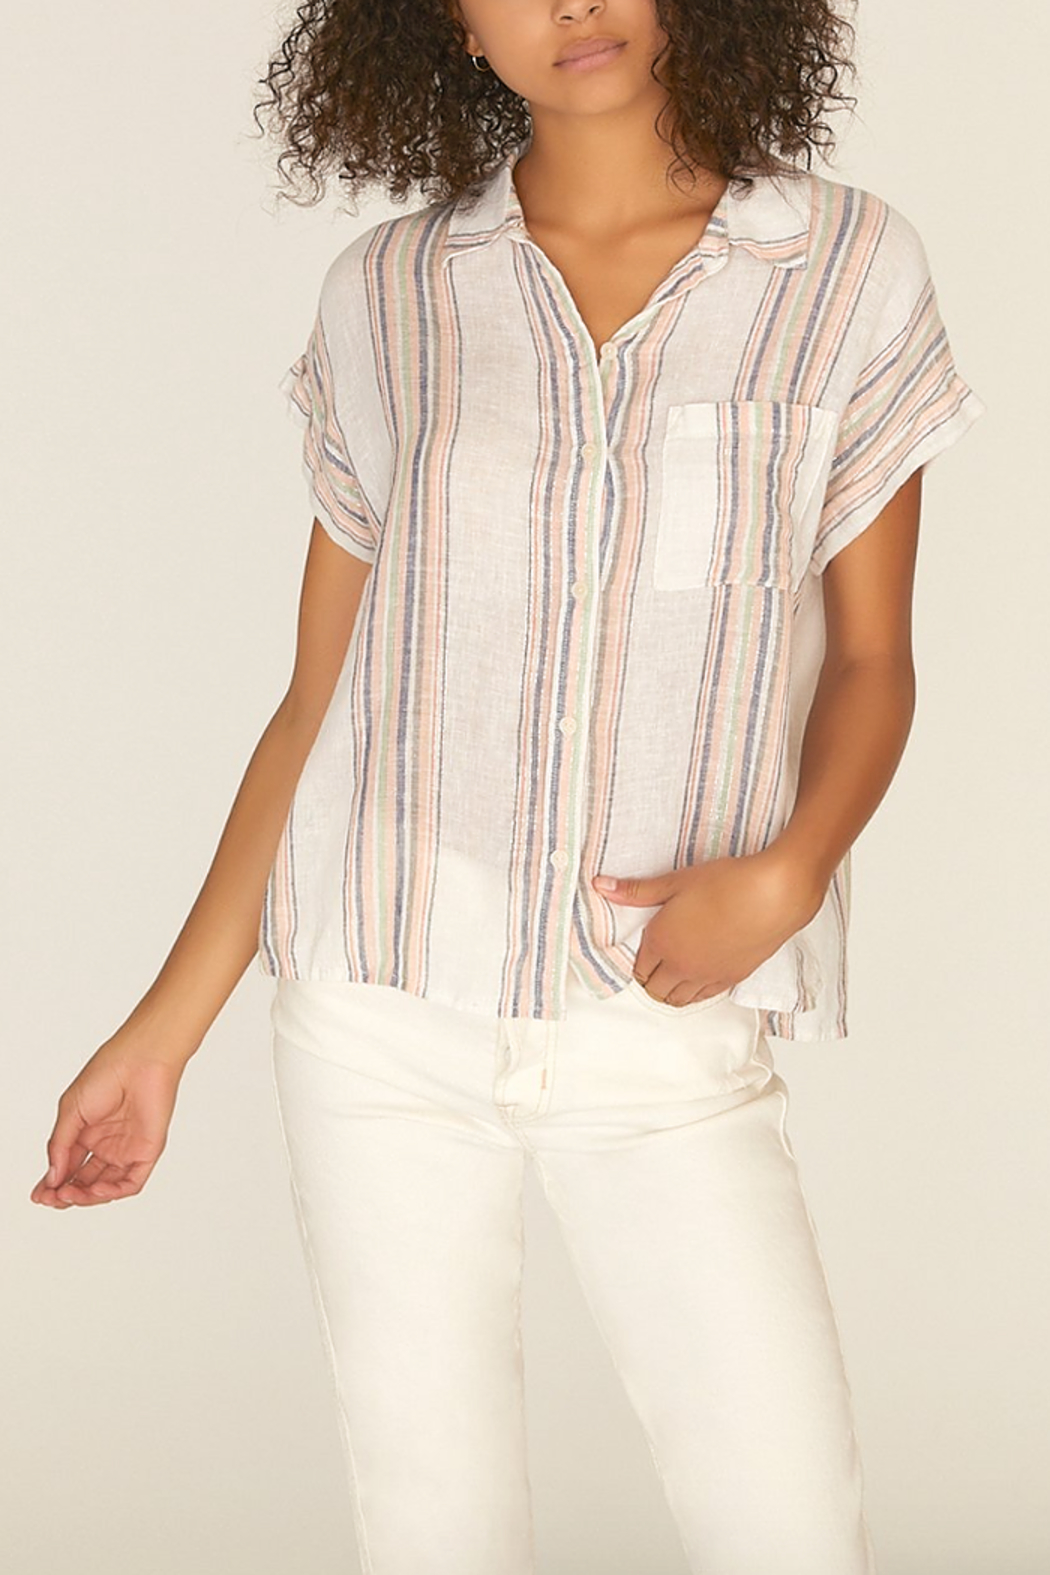 Sanctuary Mod Short Sleeve Boyfriend Shirt - Side Cropped Image